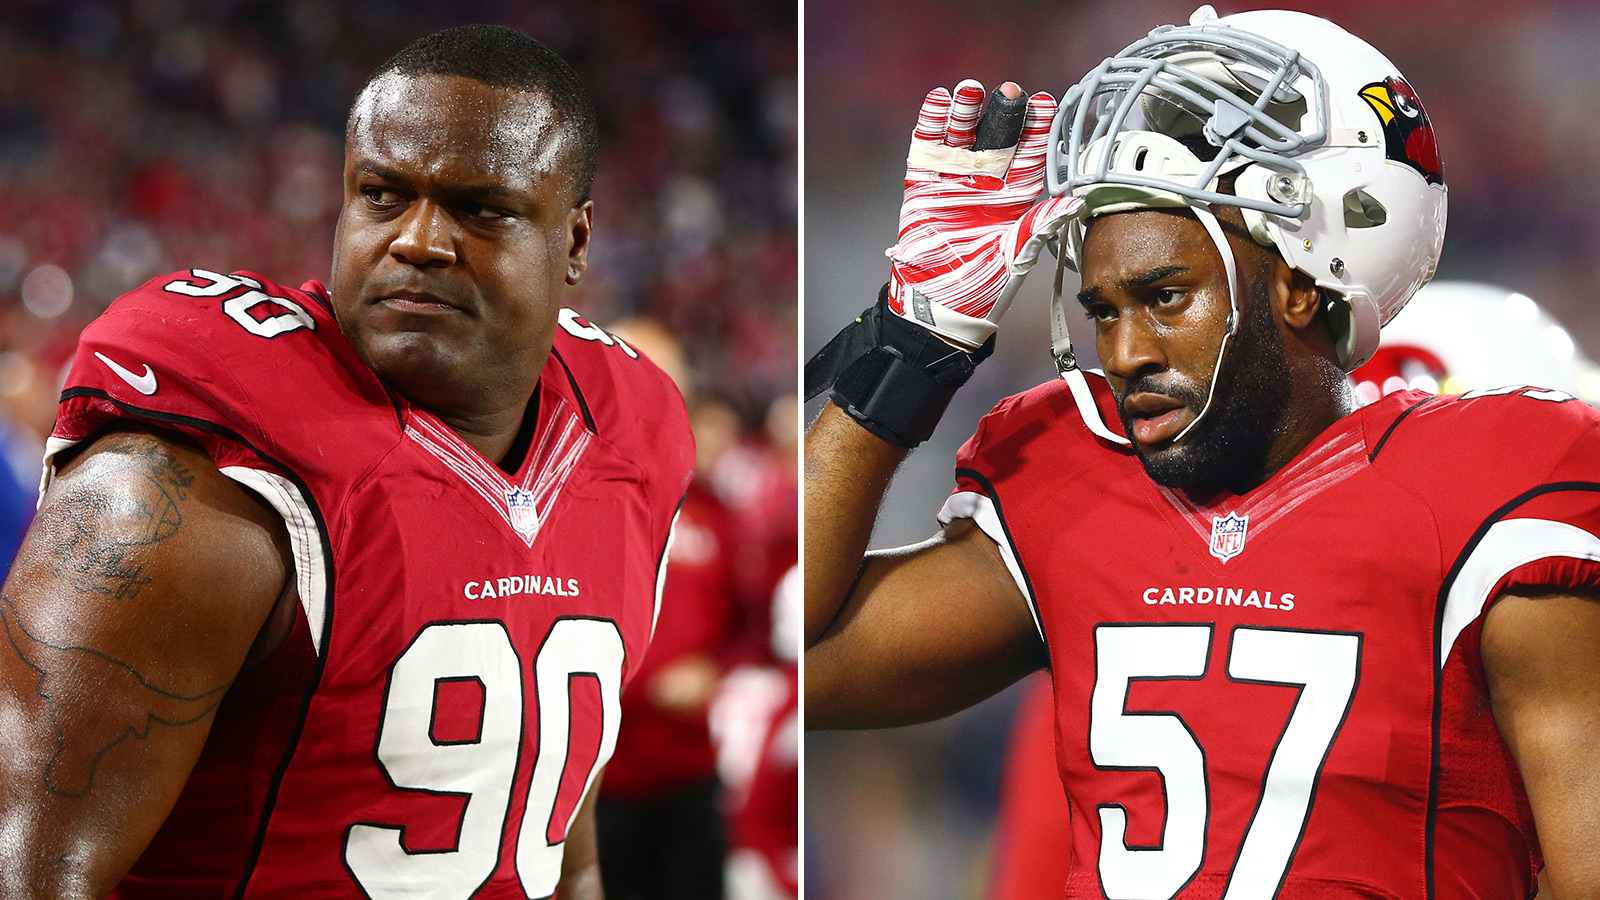 Cardinals without LB Okafor, DT Redding for playoffs